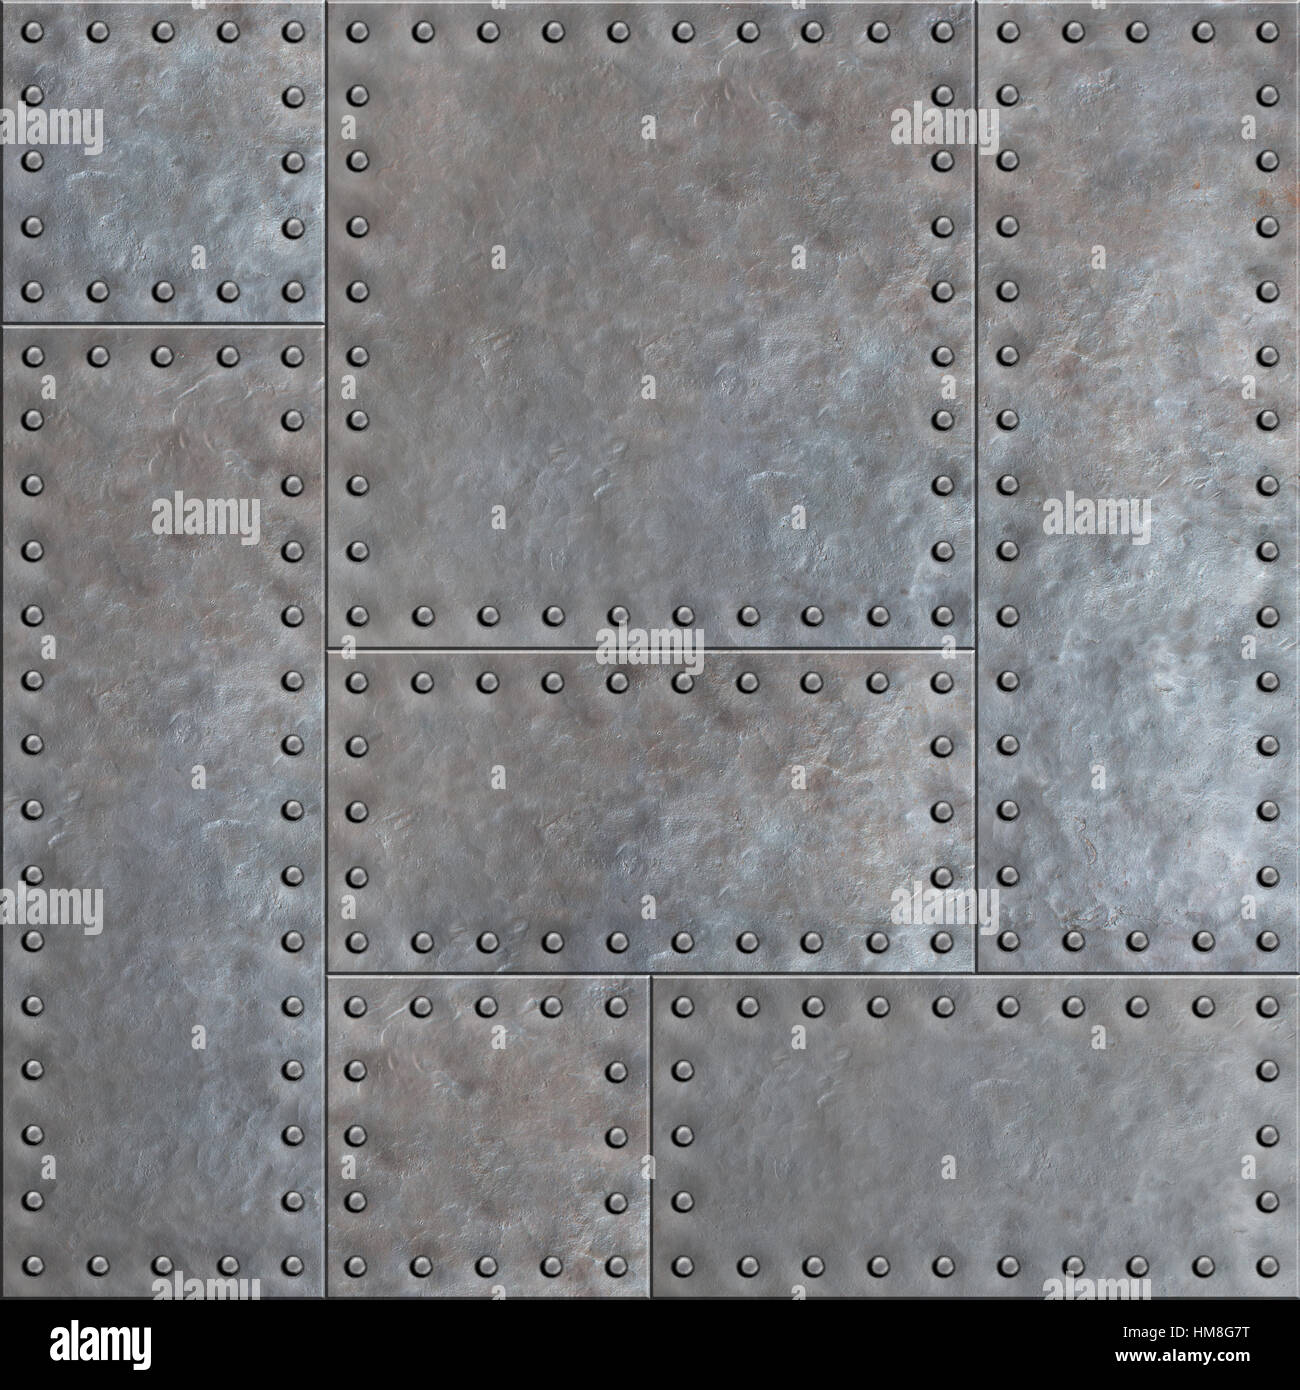 Old Stained Metal Plates With Rivets Seamless Background